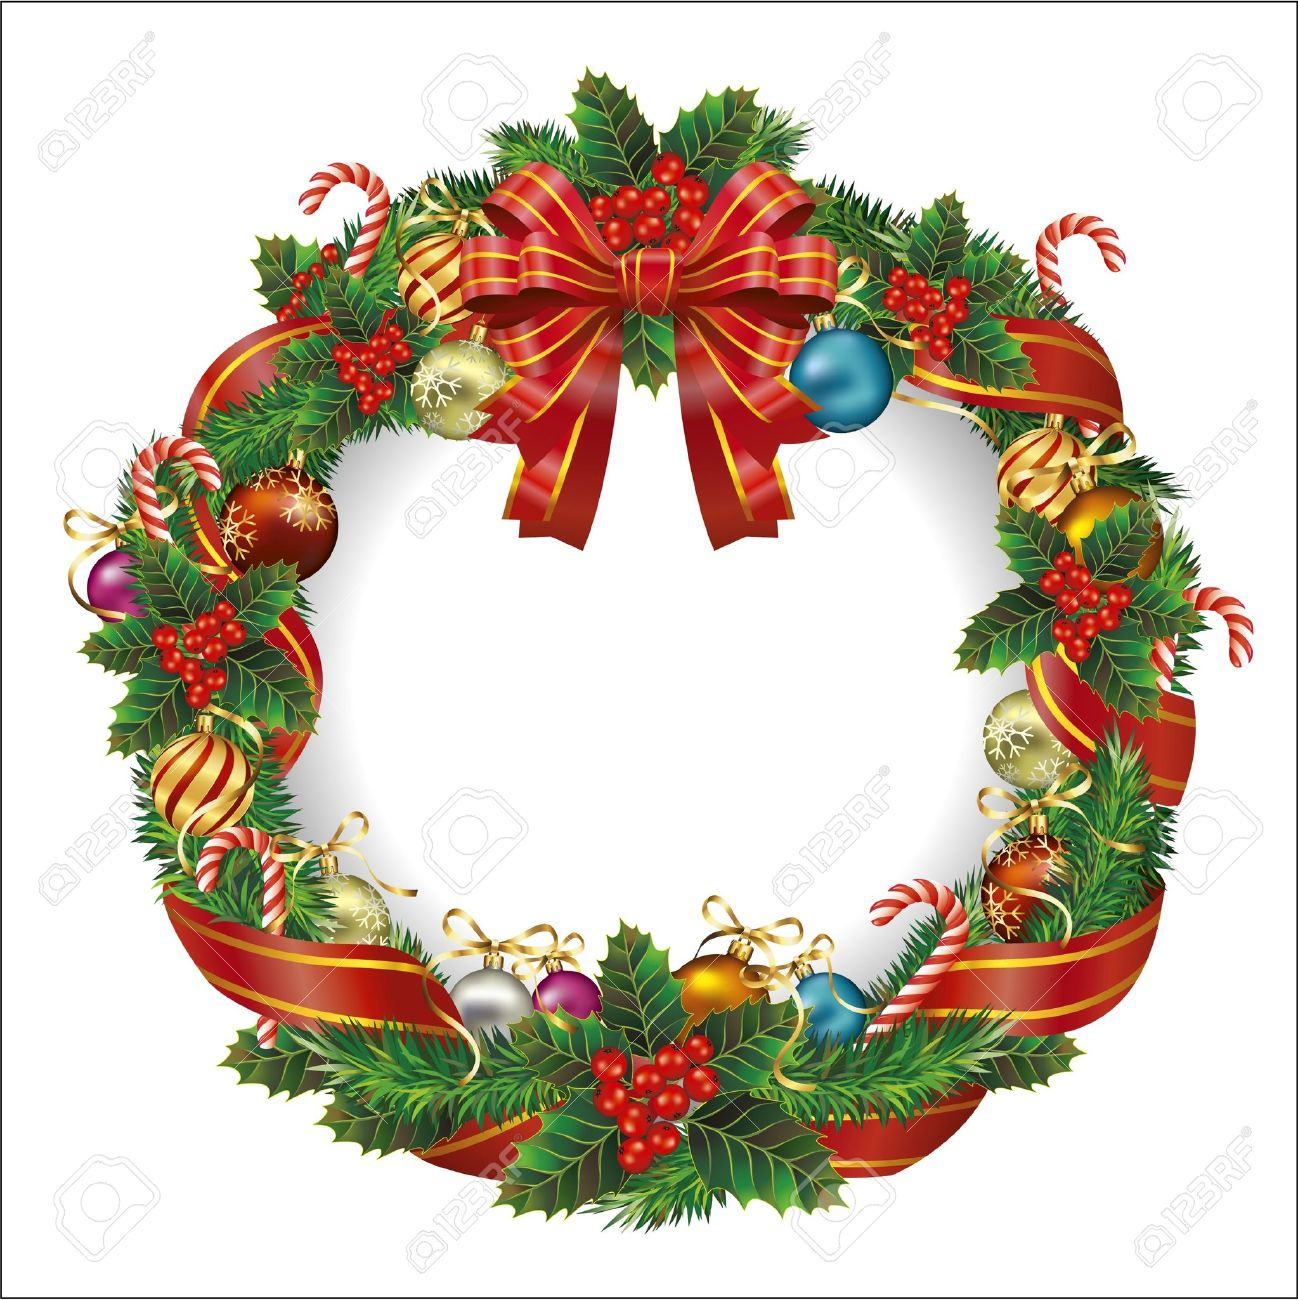 Christmas Wreath Vector.Christmas Wreath Vector